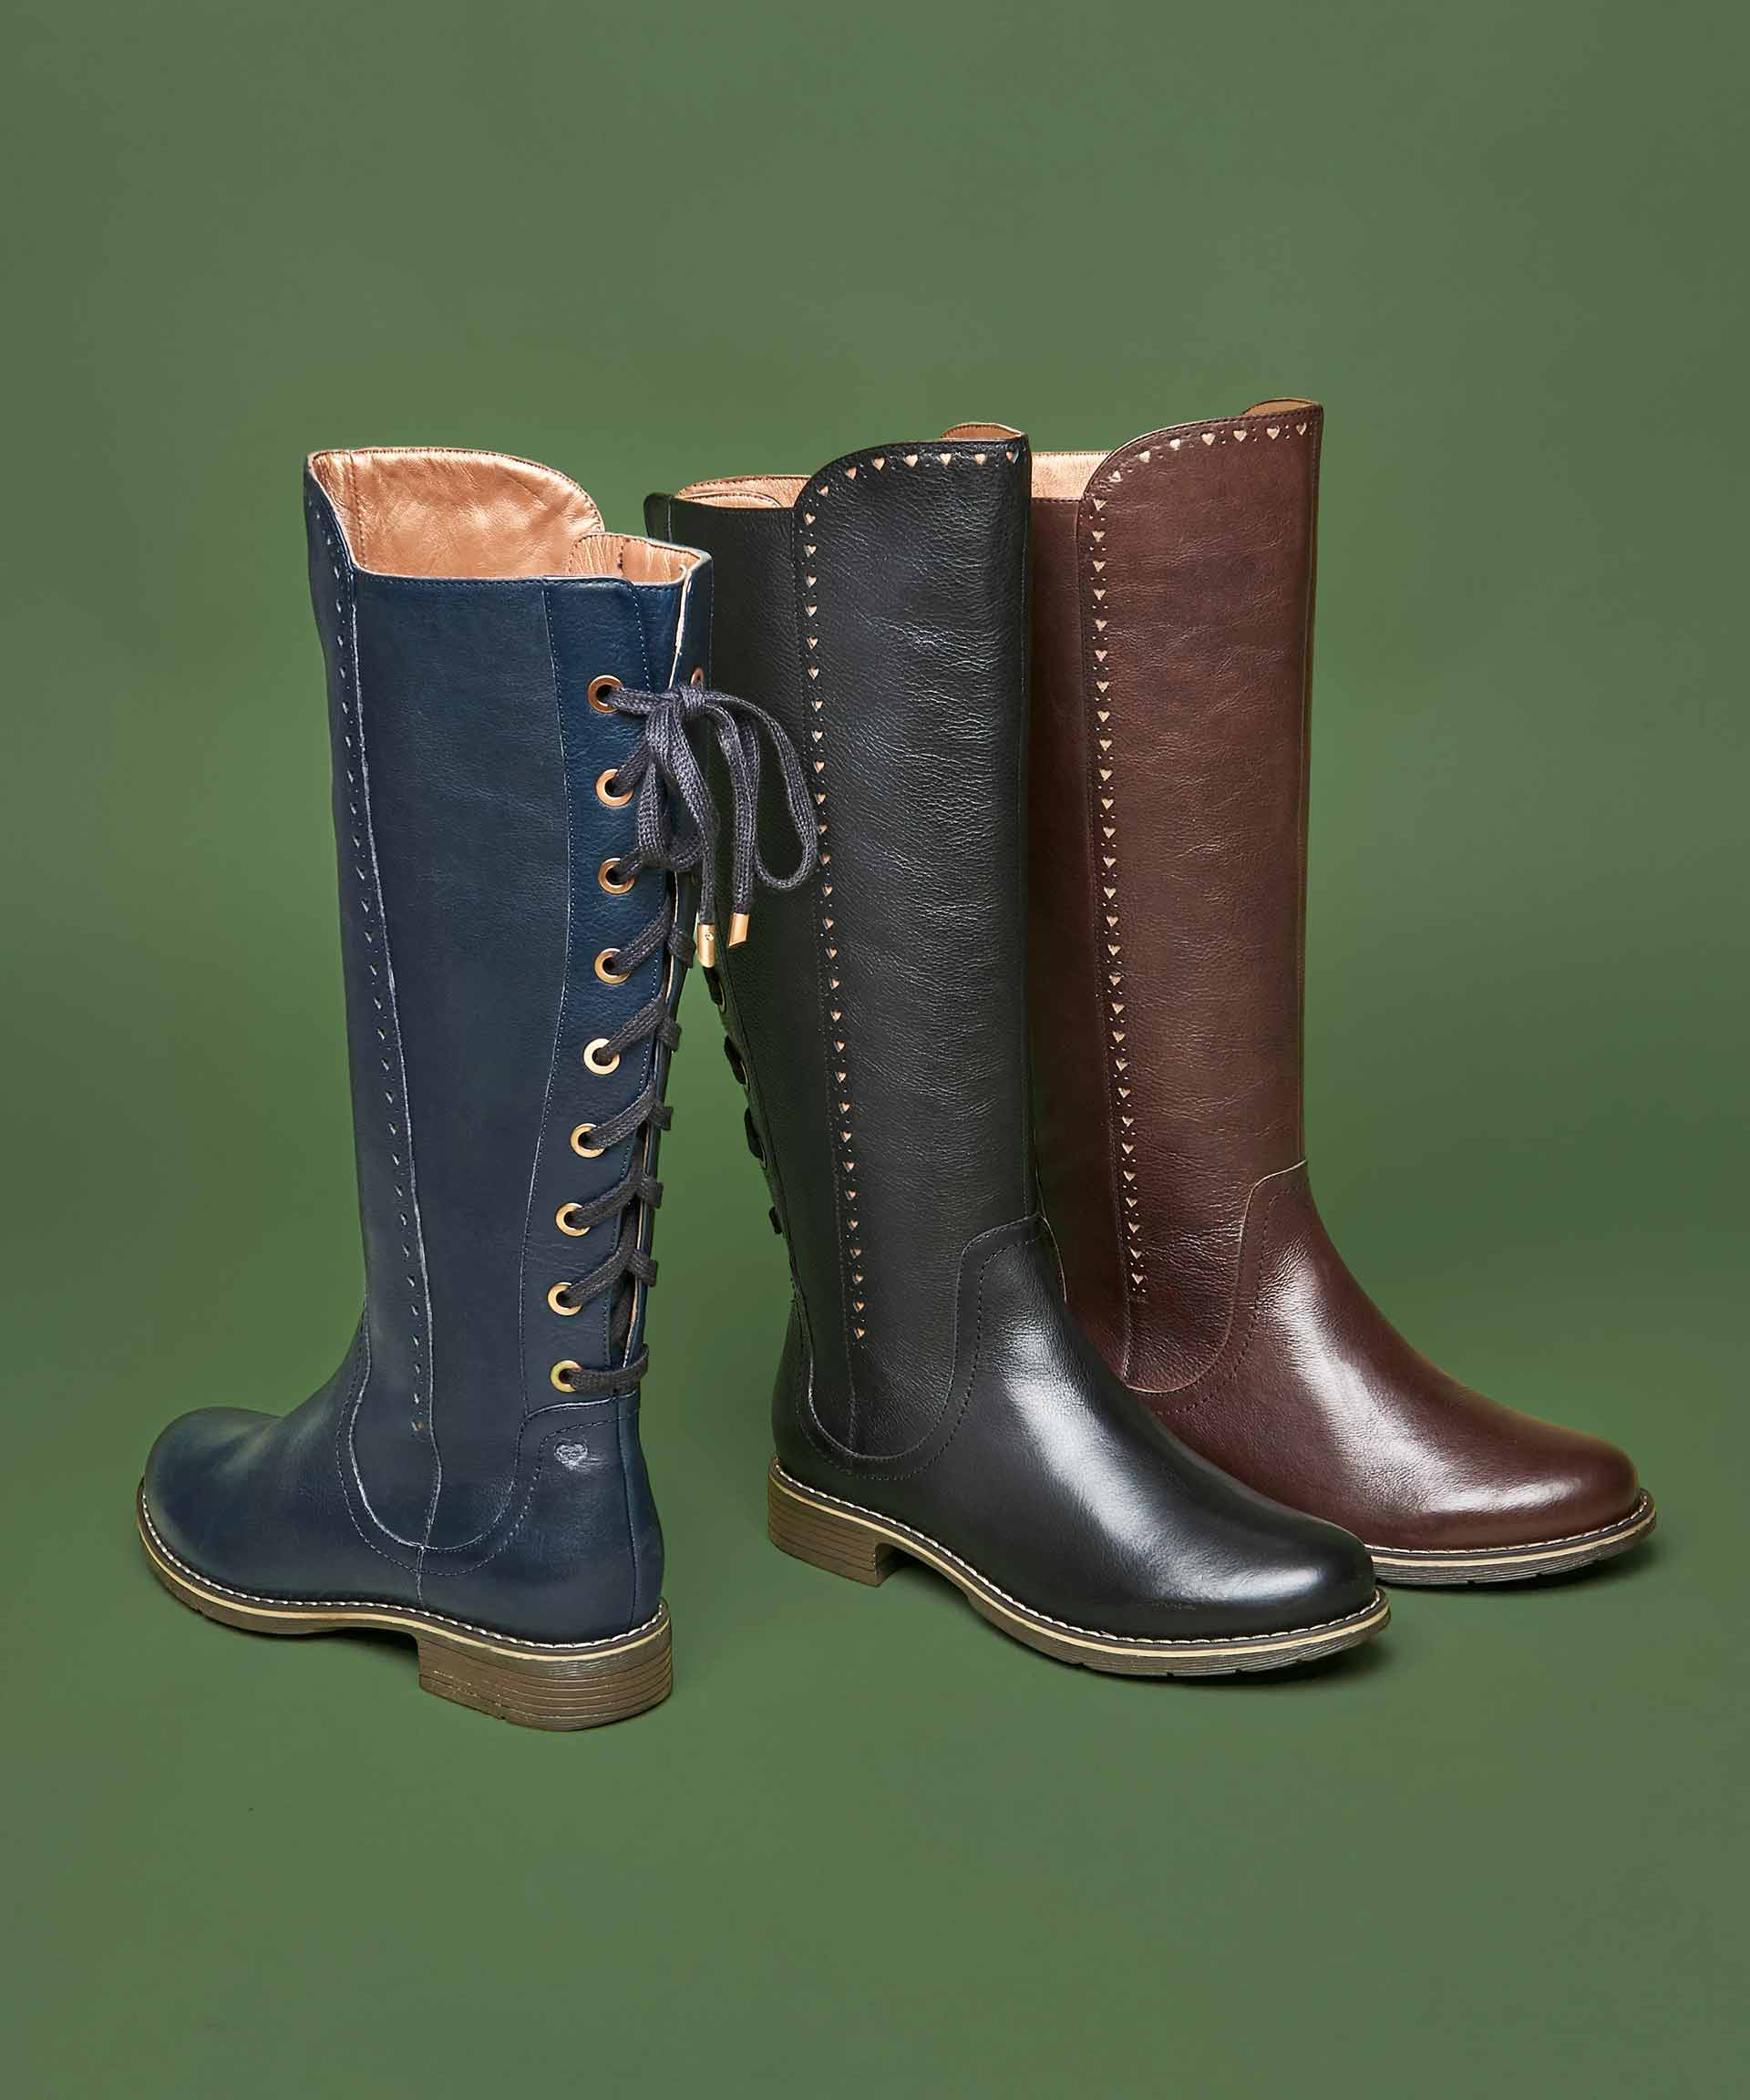 Oliver 2 ladies long boots